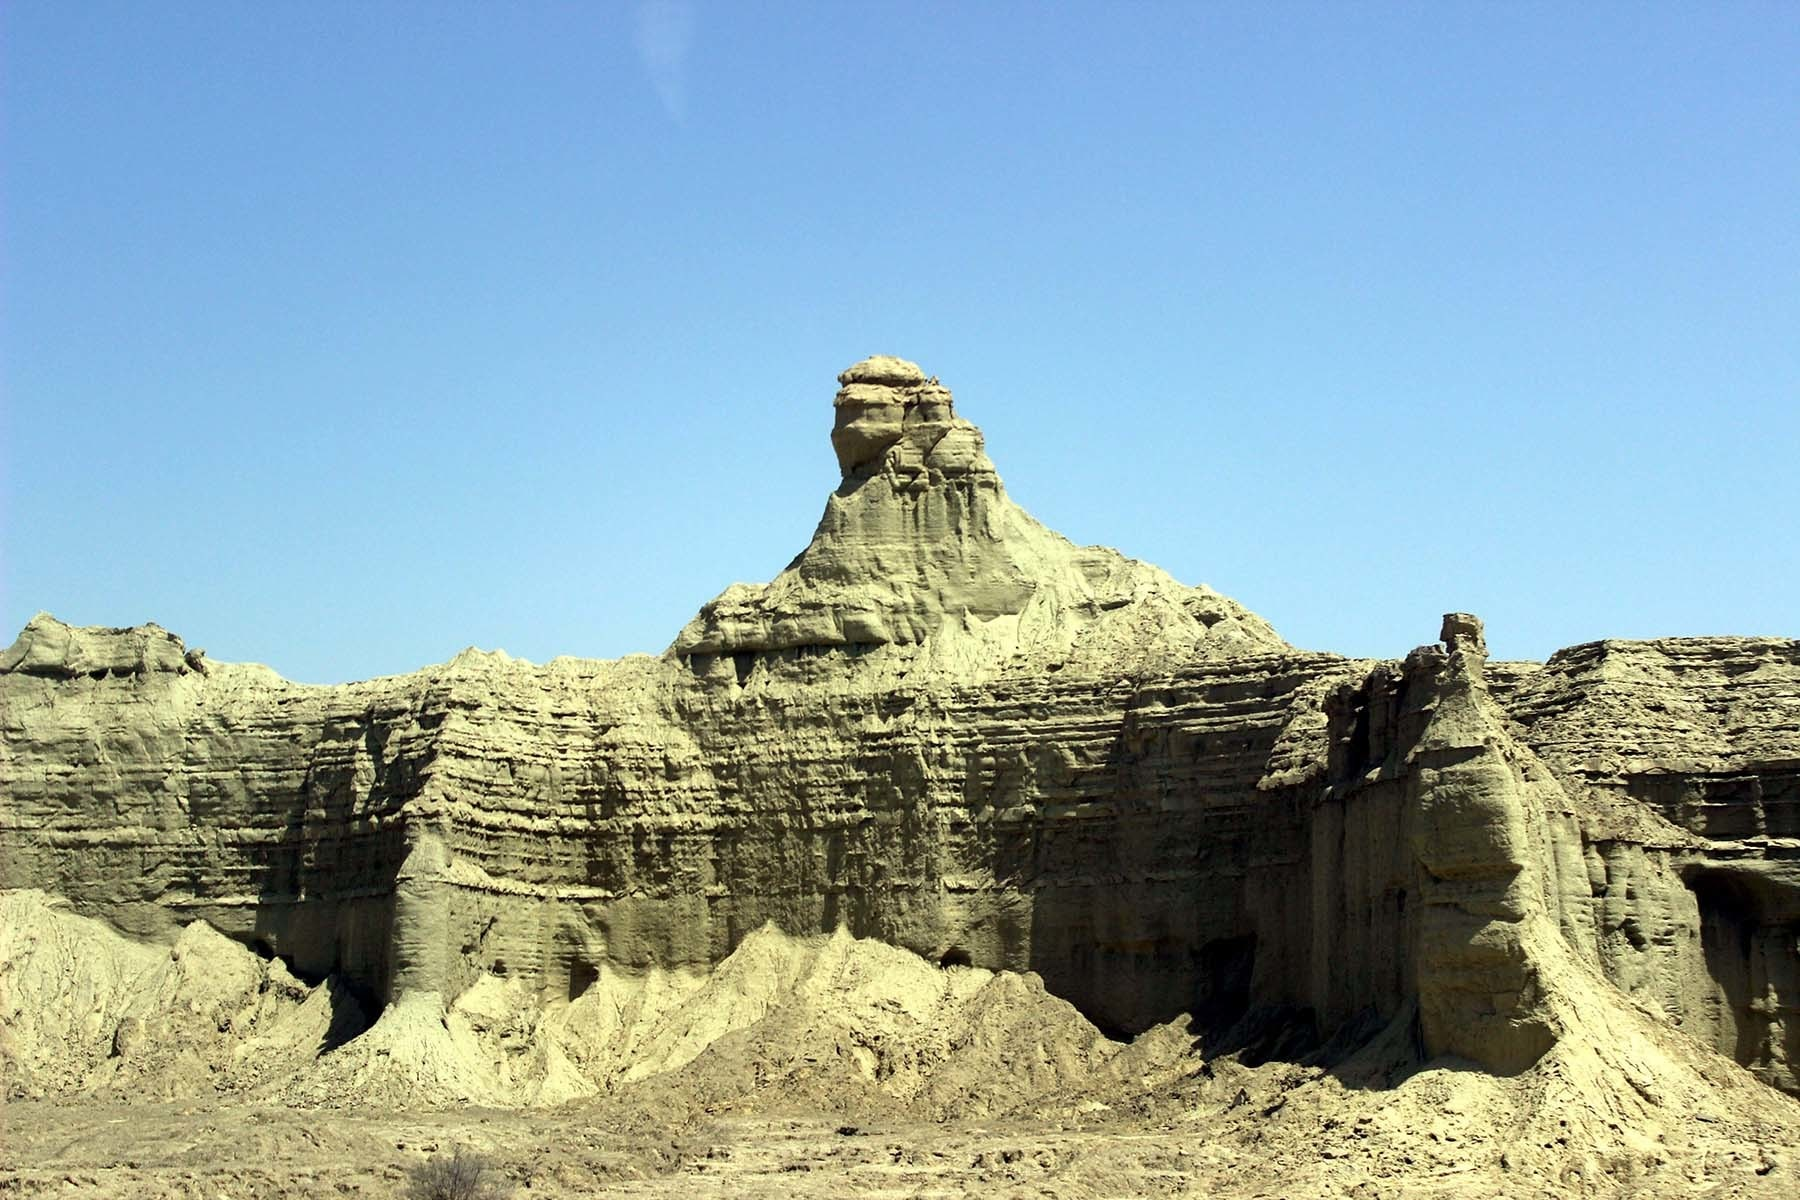 The sphinx-like structure.